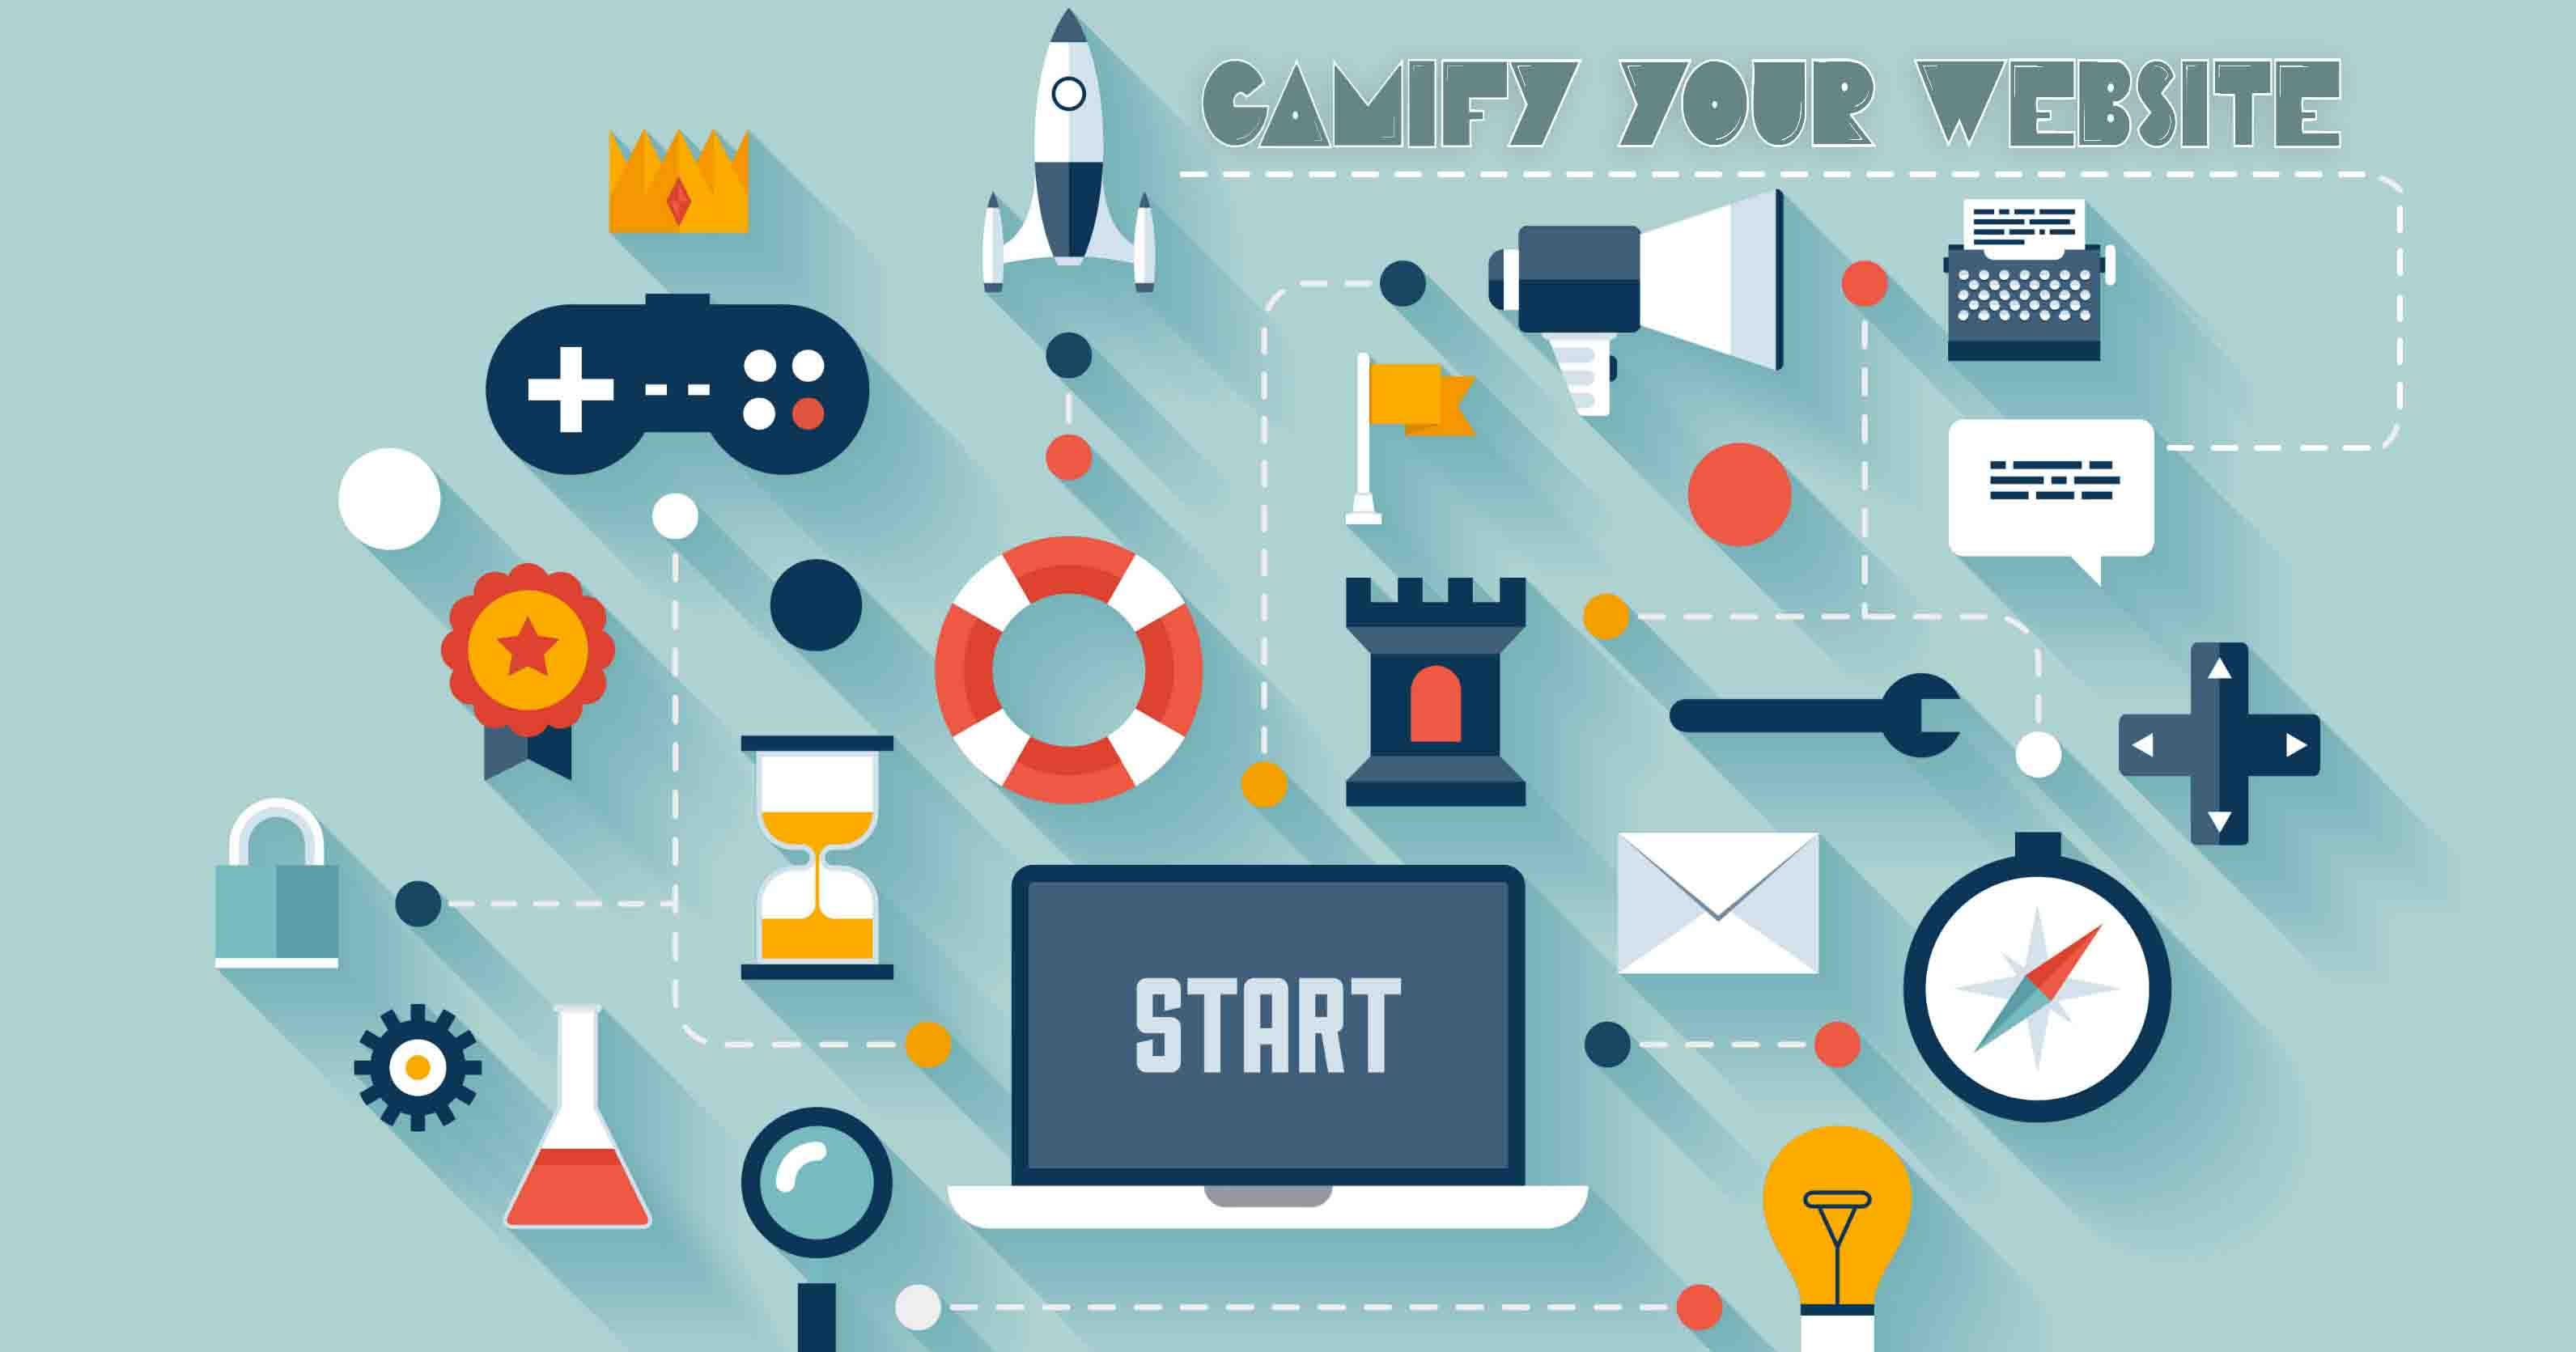 Gamify Your Website For Better User Interaction